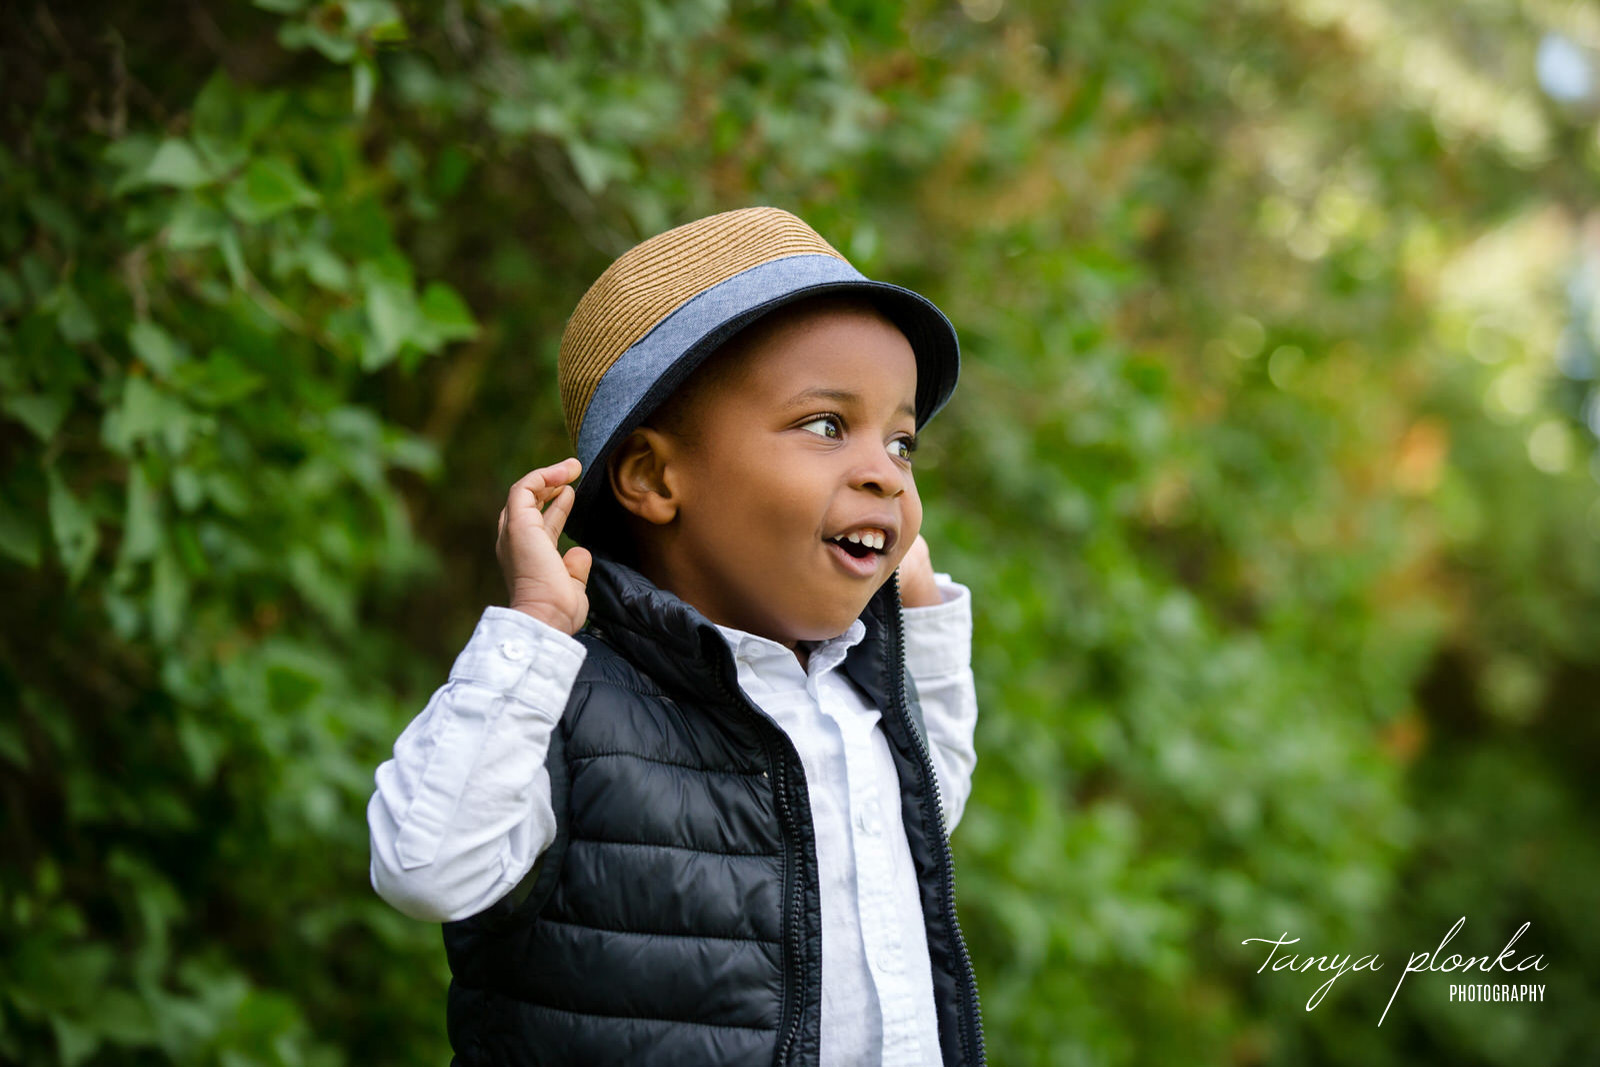 Young boy smiling while pulling on his hat